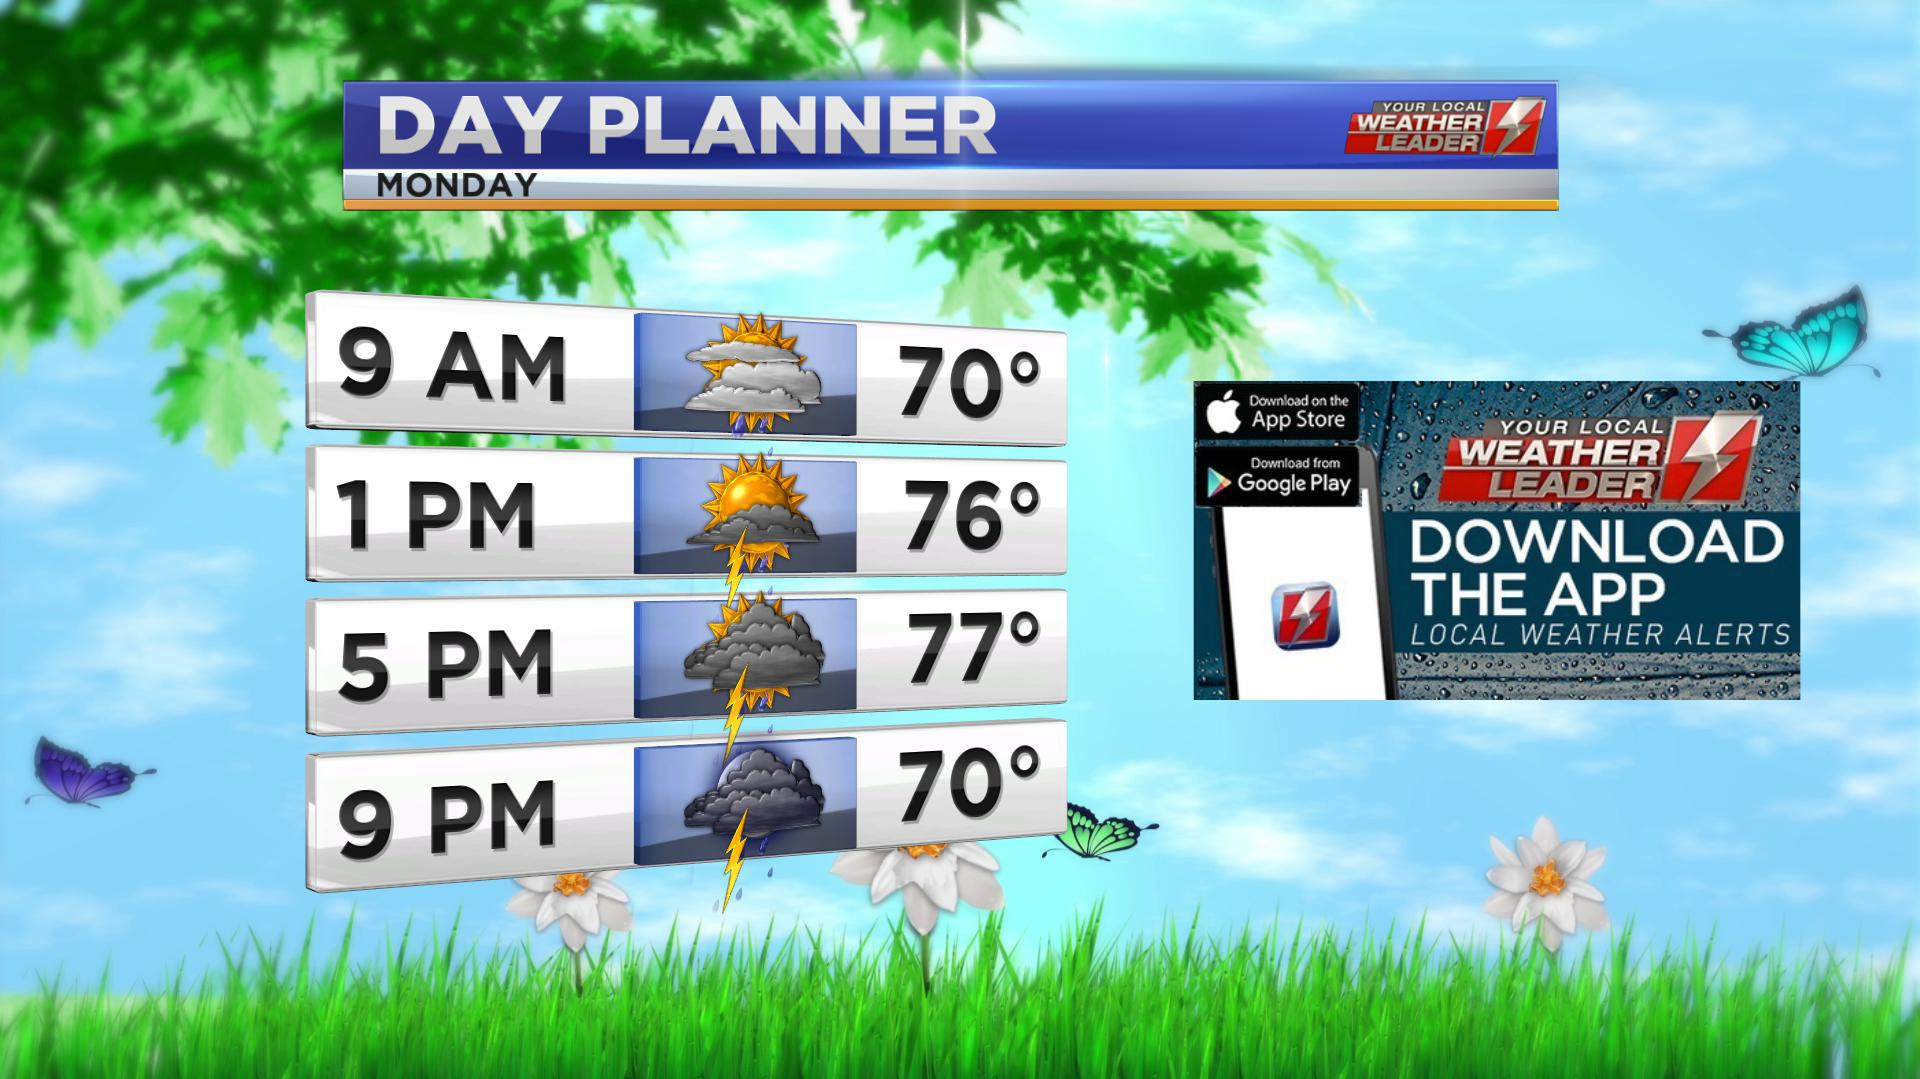 Day Planner for Monday 10 June 2019